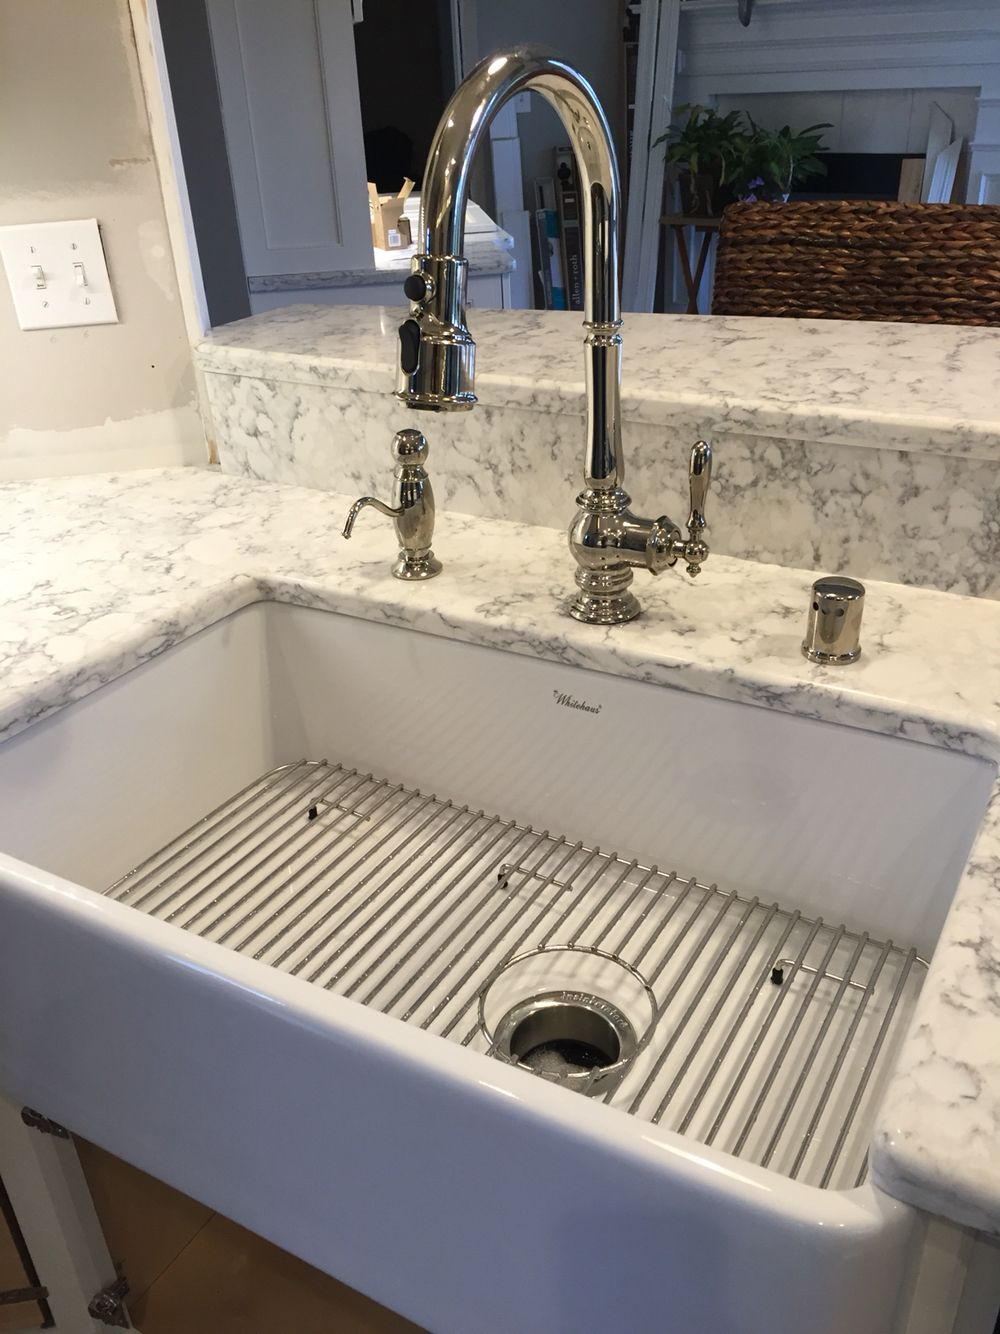 Kohler Artifacts Faucet w/ Whitehaus Farmhouse Sink Mom